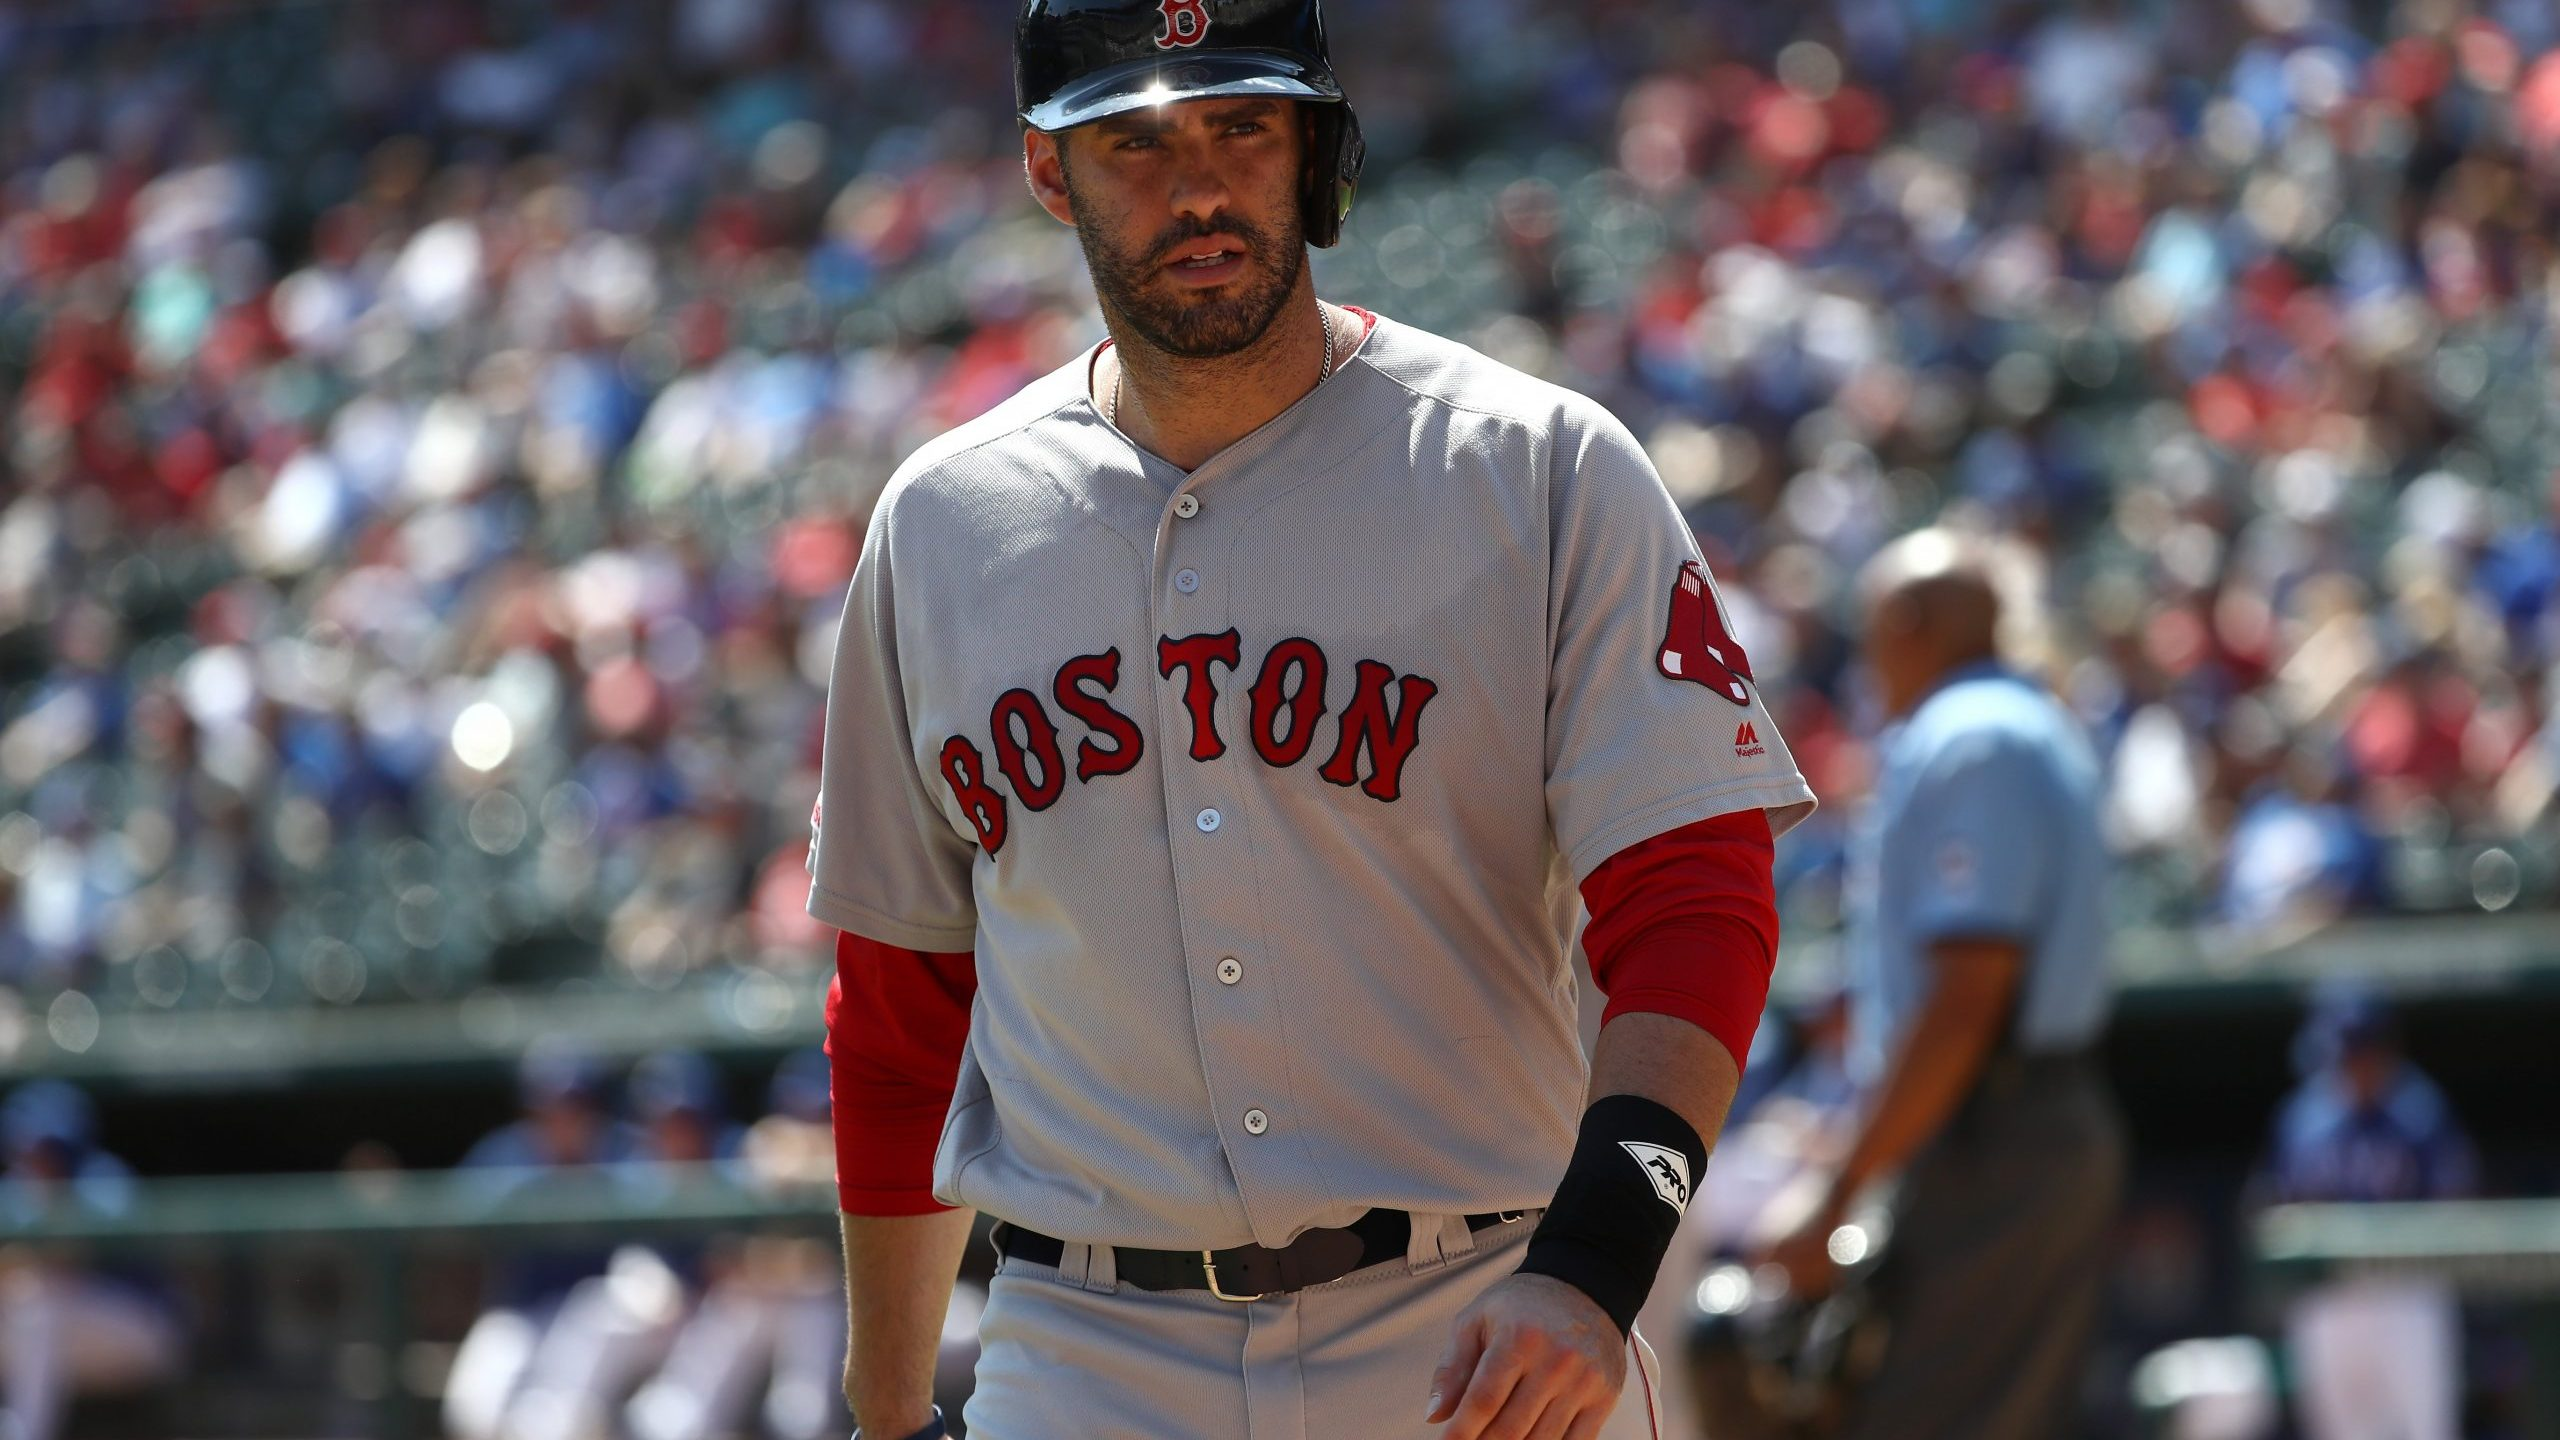 J.D. Martinez of the Boston Red Sox at Globe Life Park in Arlington on Sept. 26, 2019 in Arlington, Texas. (Credit: Ronald Martinez/Getty Images)